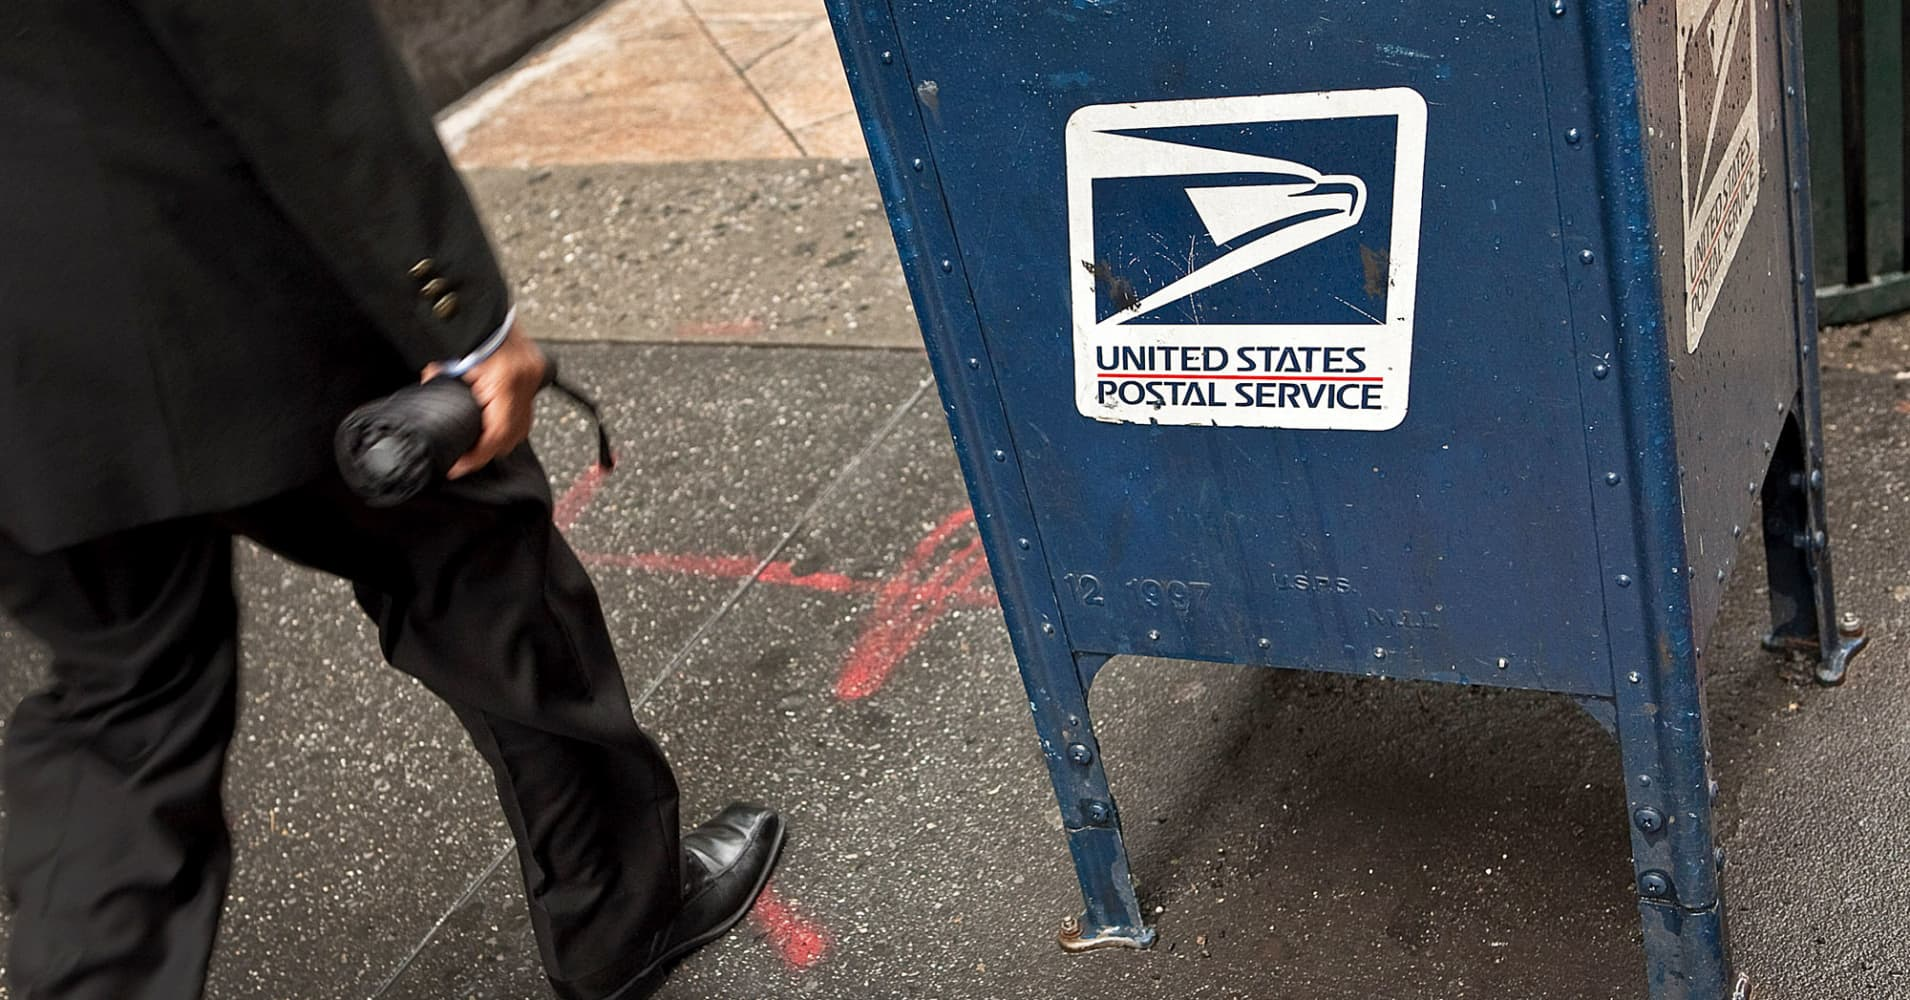 How a mailed check for $112 got cashed for $3,500: The new 'fishing' scheme